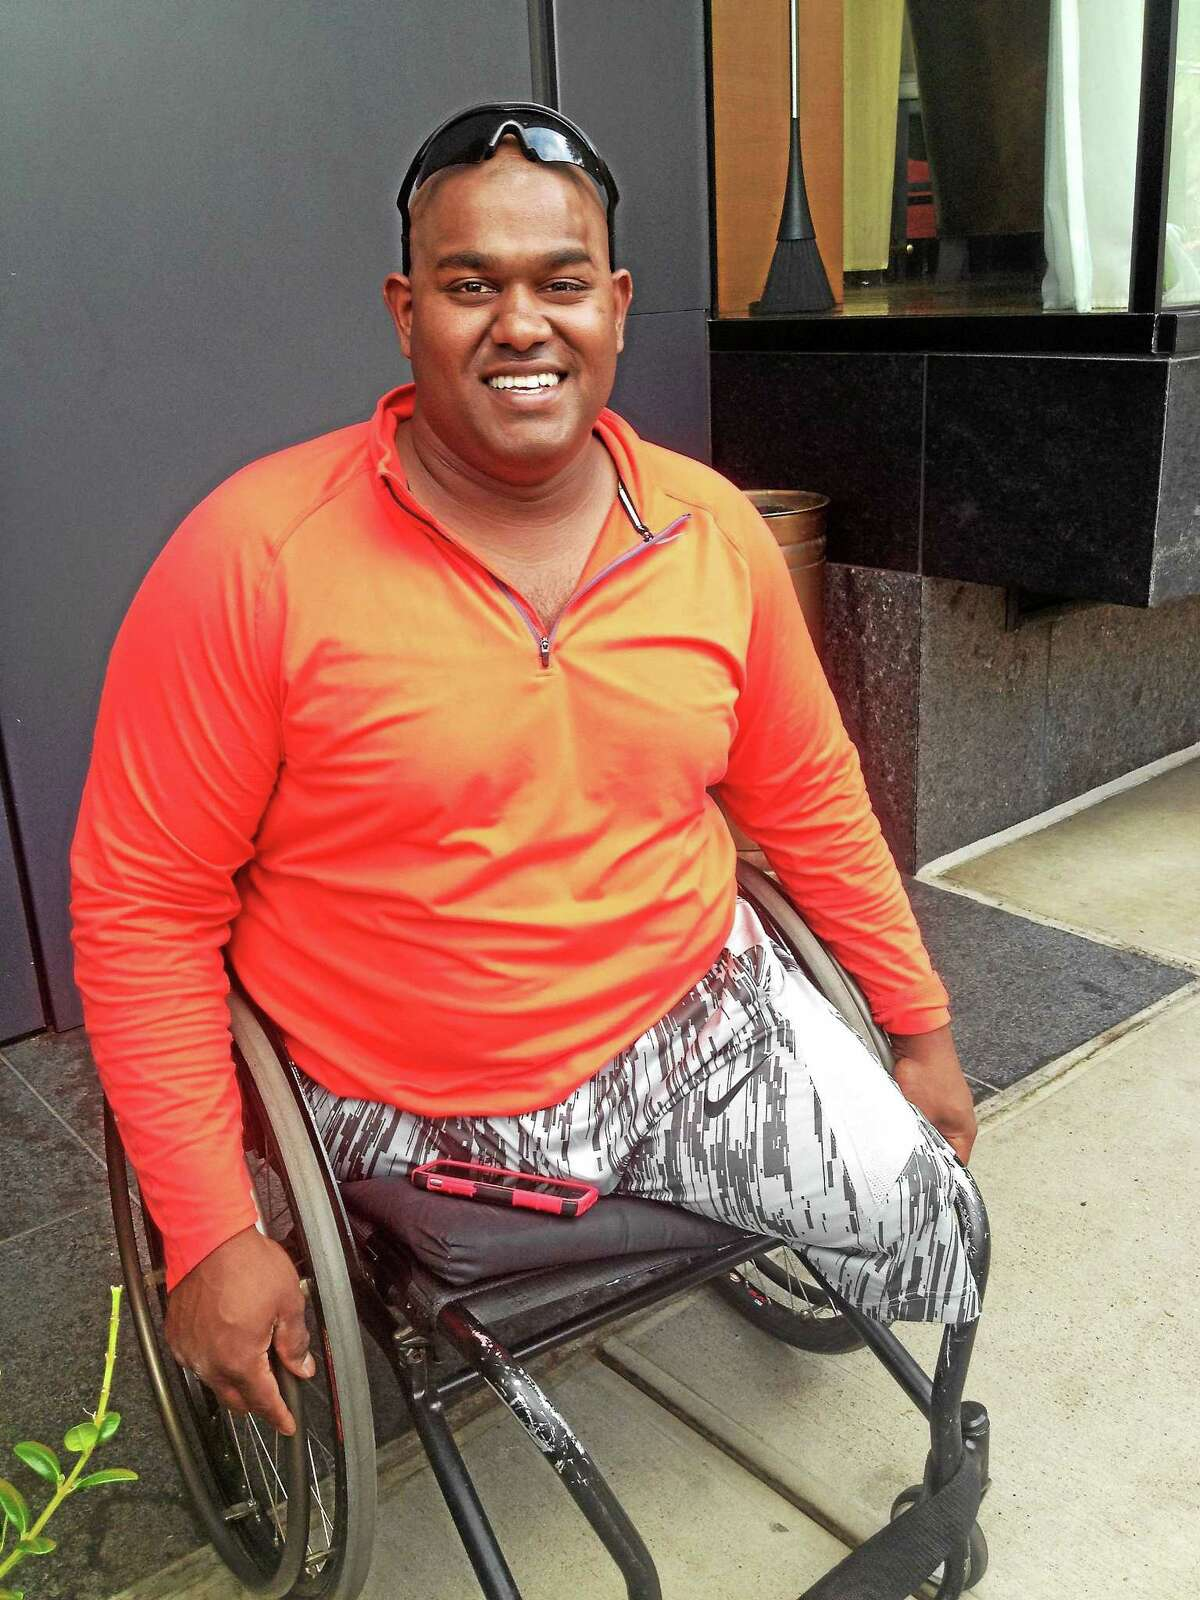 Toran Gaal, who lost both his legs and came close to death when an IED exploded while he was serving in Afghanistan, outside the Study at Yale hotel on Sunday, July 19, 2015 in New Haven.